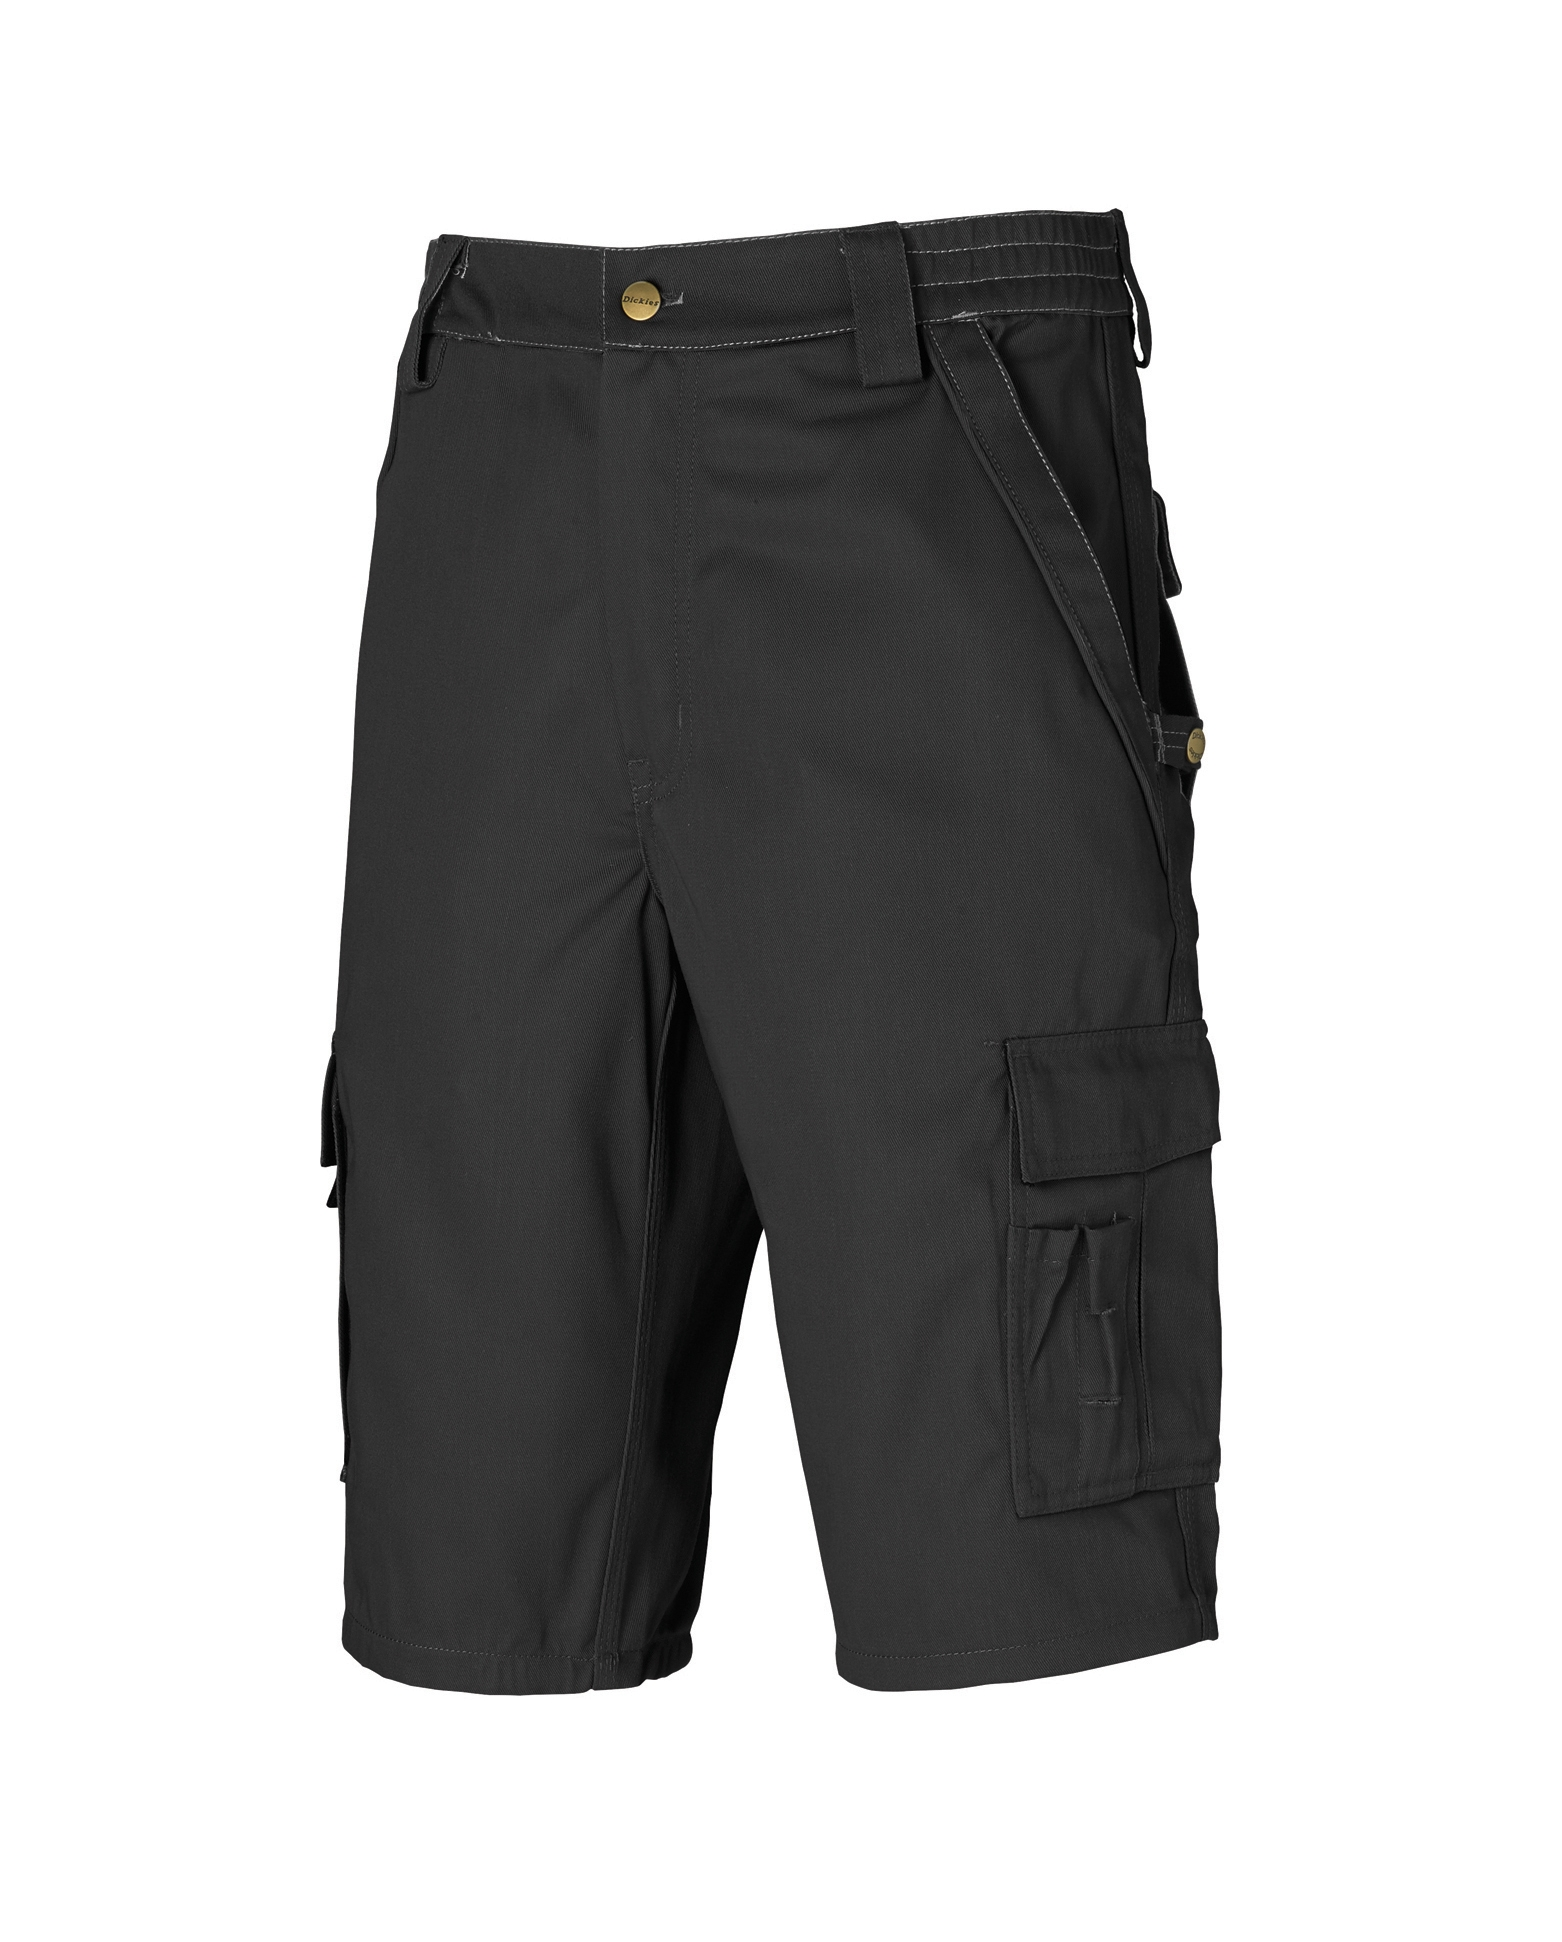 dickies-industry-300-two-tone-work-shorts-IN30050-Black_FT